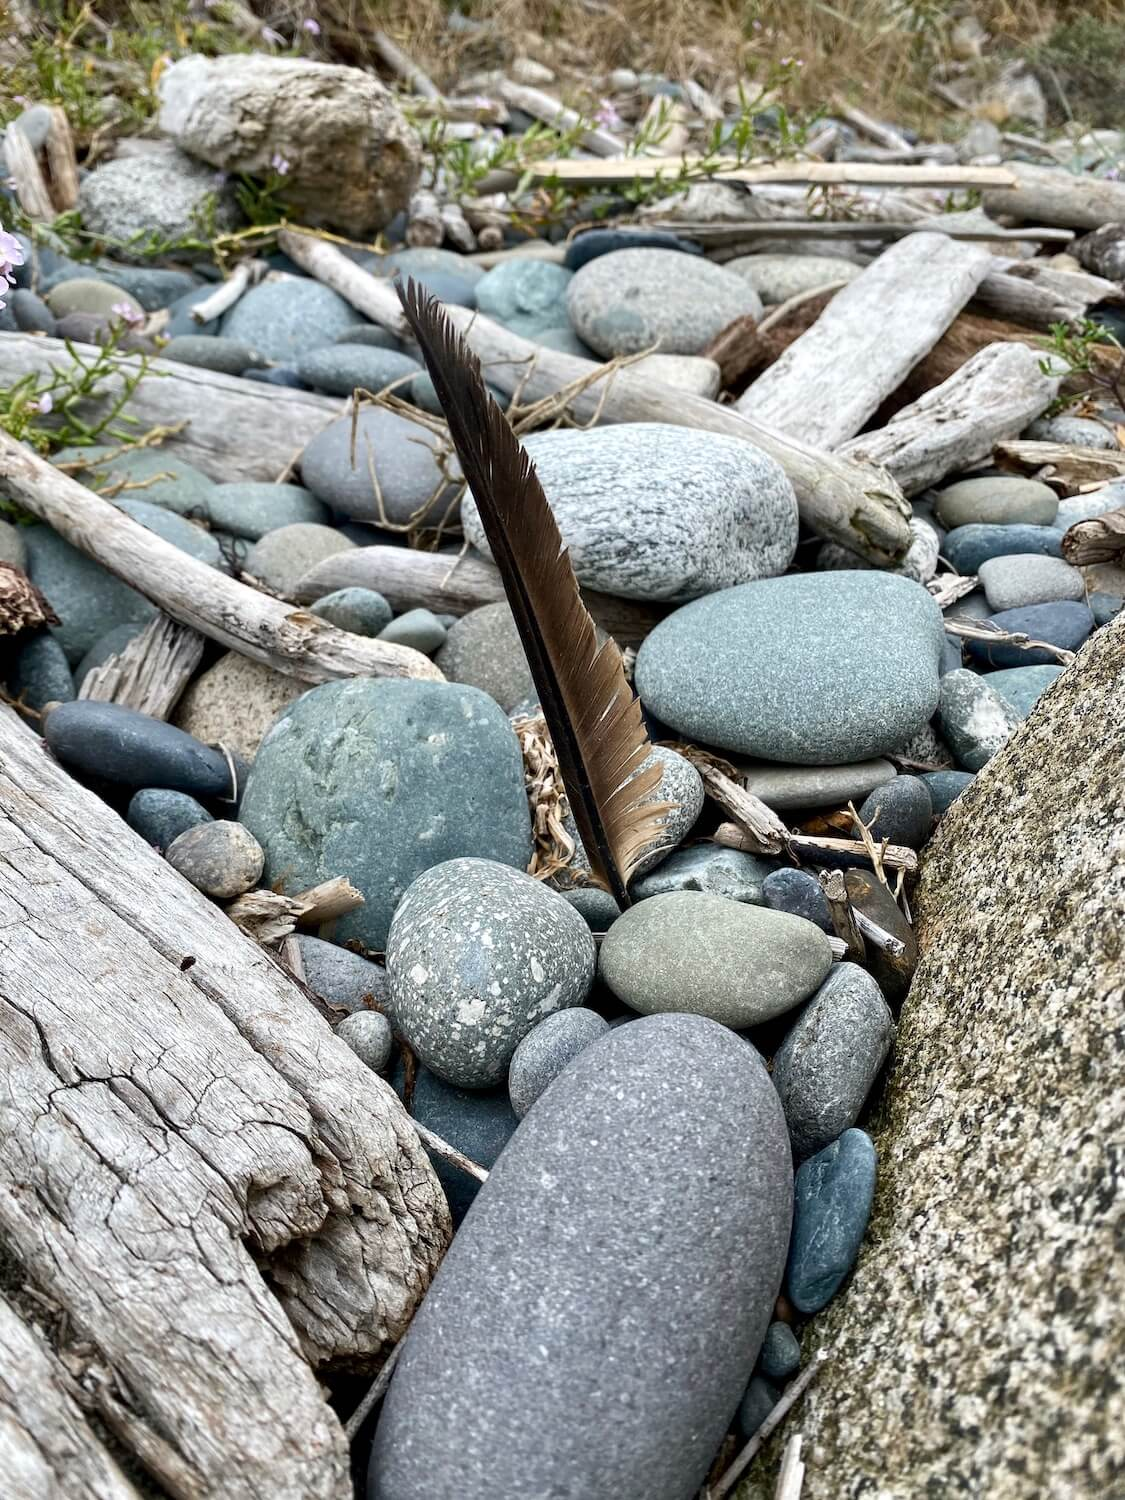 A dark feather is stuck into a group of rock on a Salish Sea beach.  There are a few pieces of weathered driftwood as well.